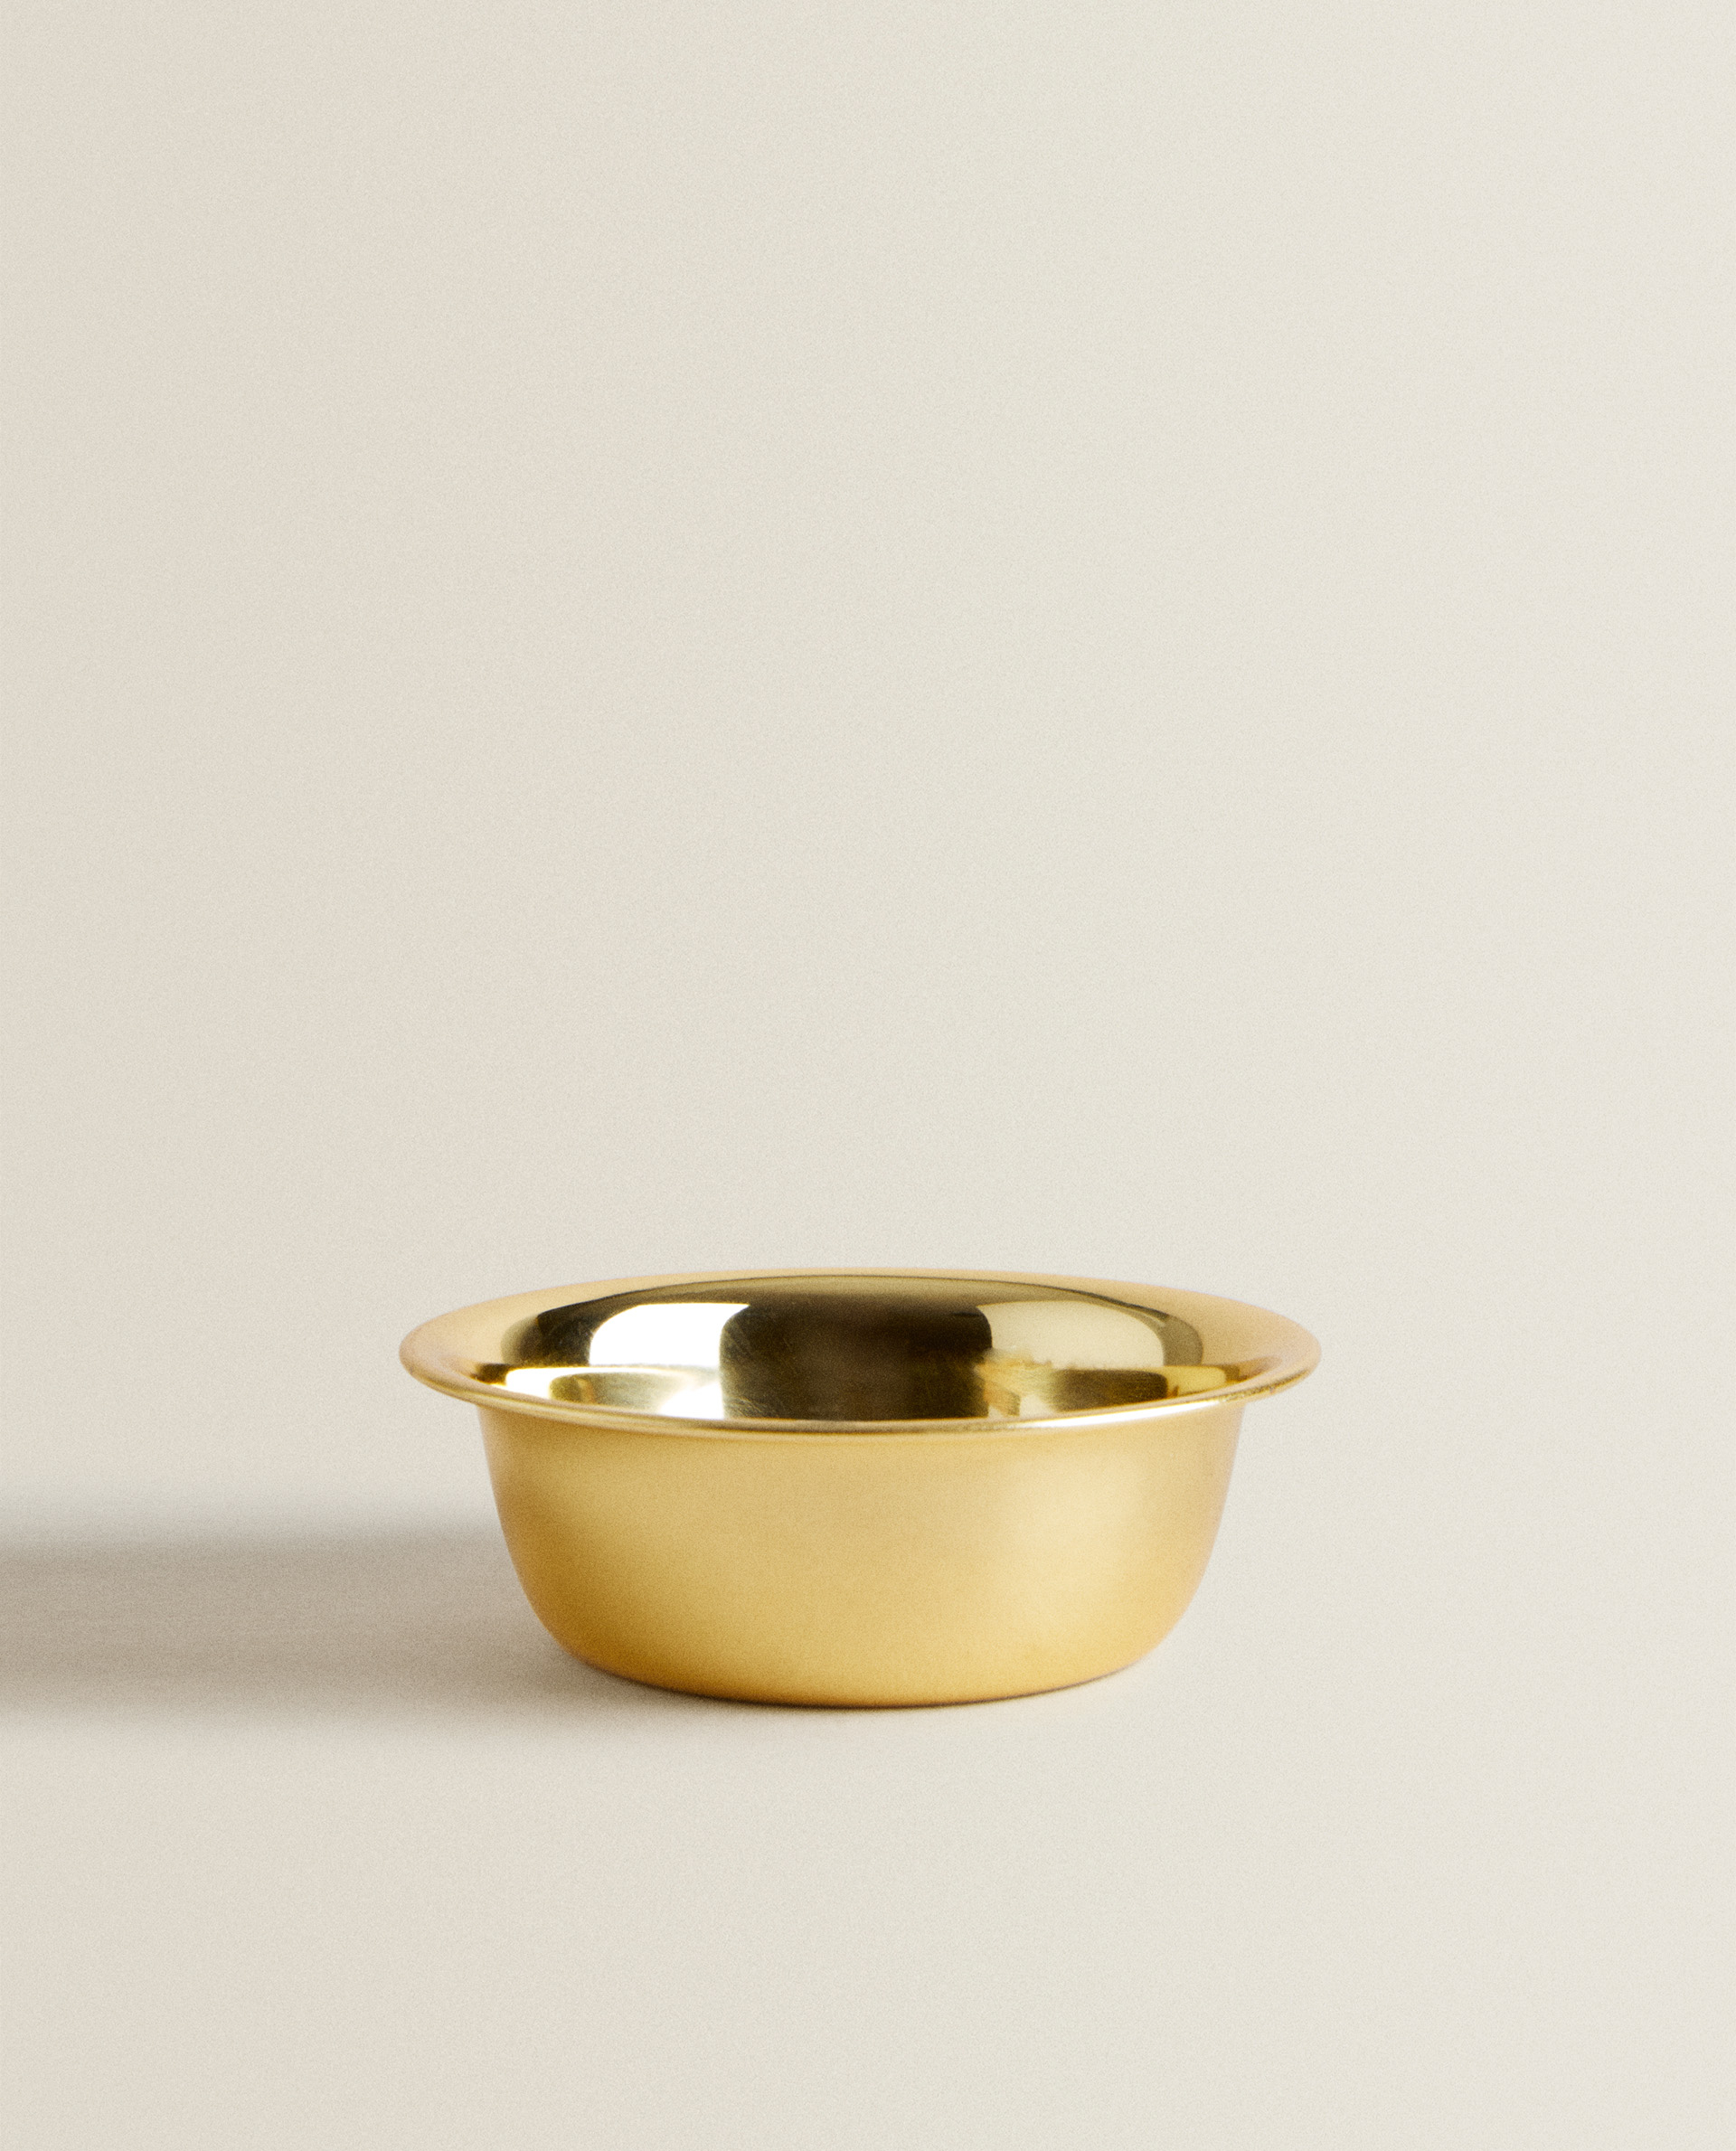 SHINY GOLD BOWL